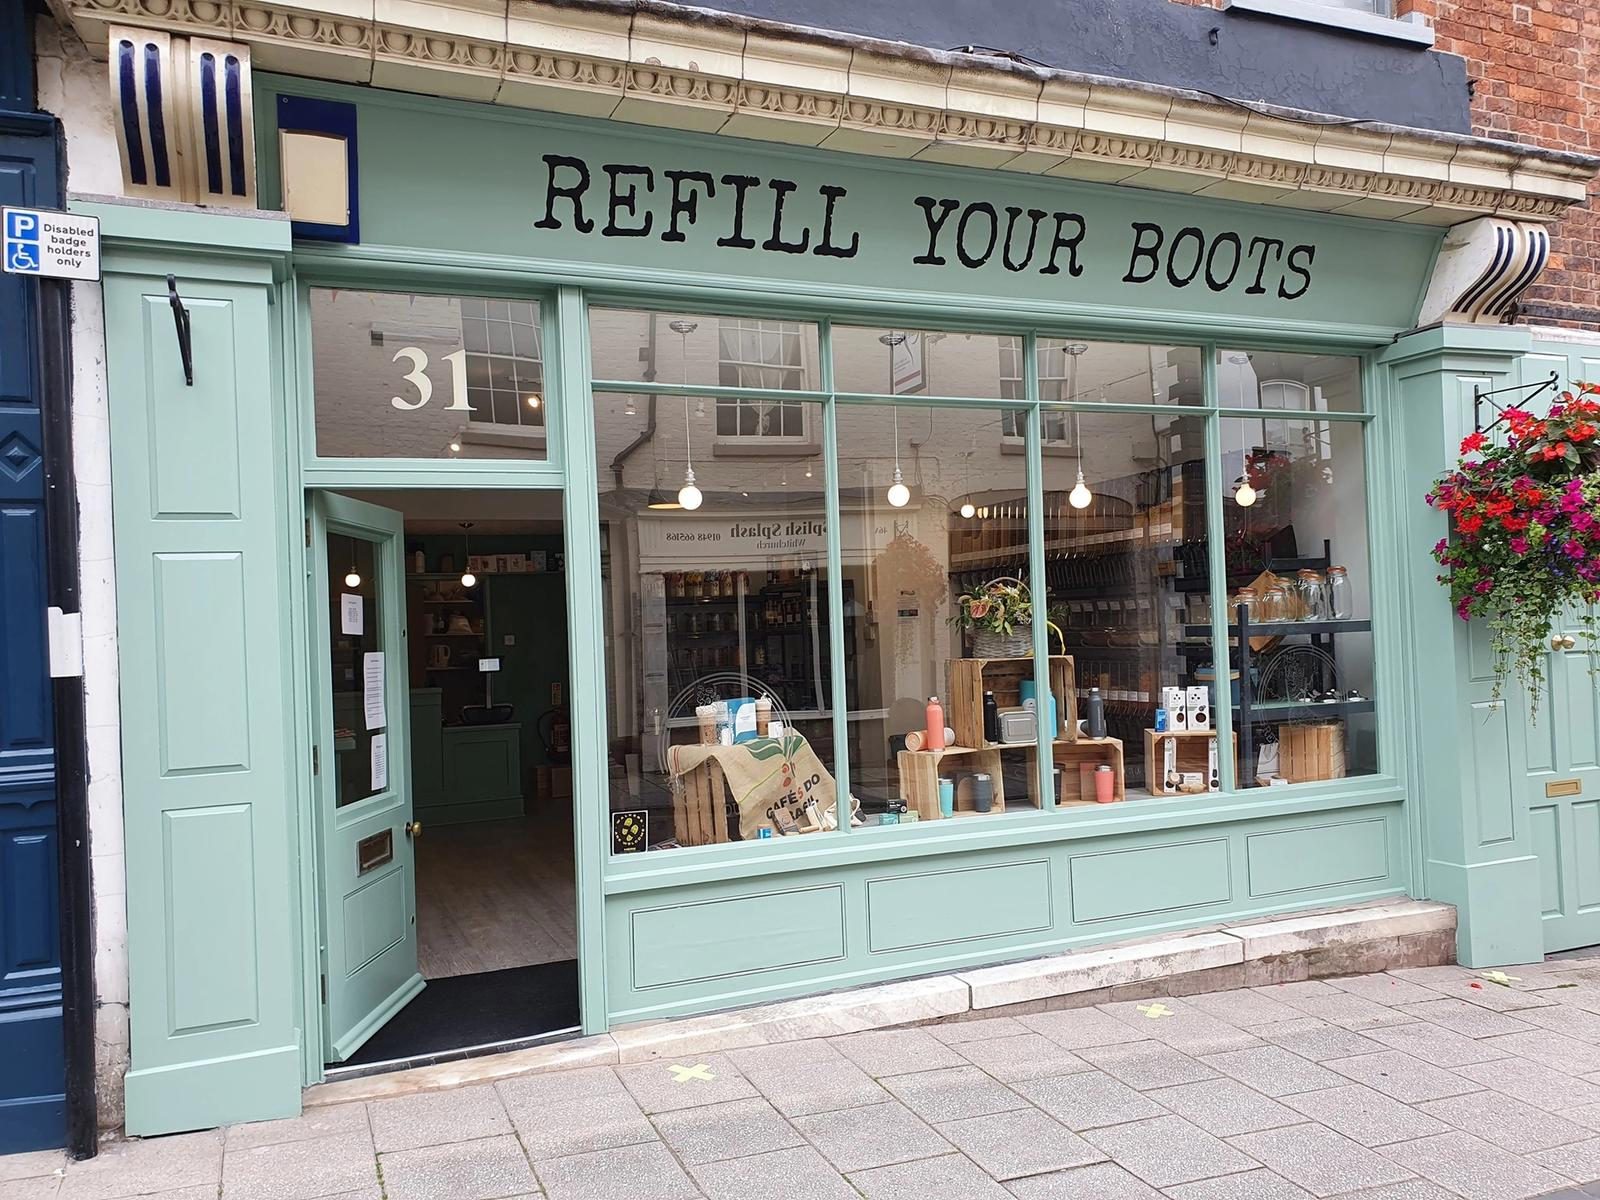 Refill Your Boots